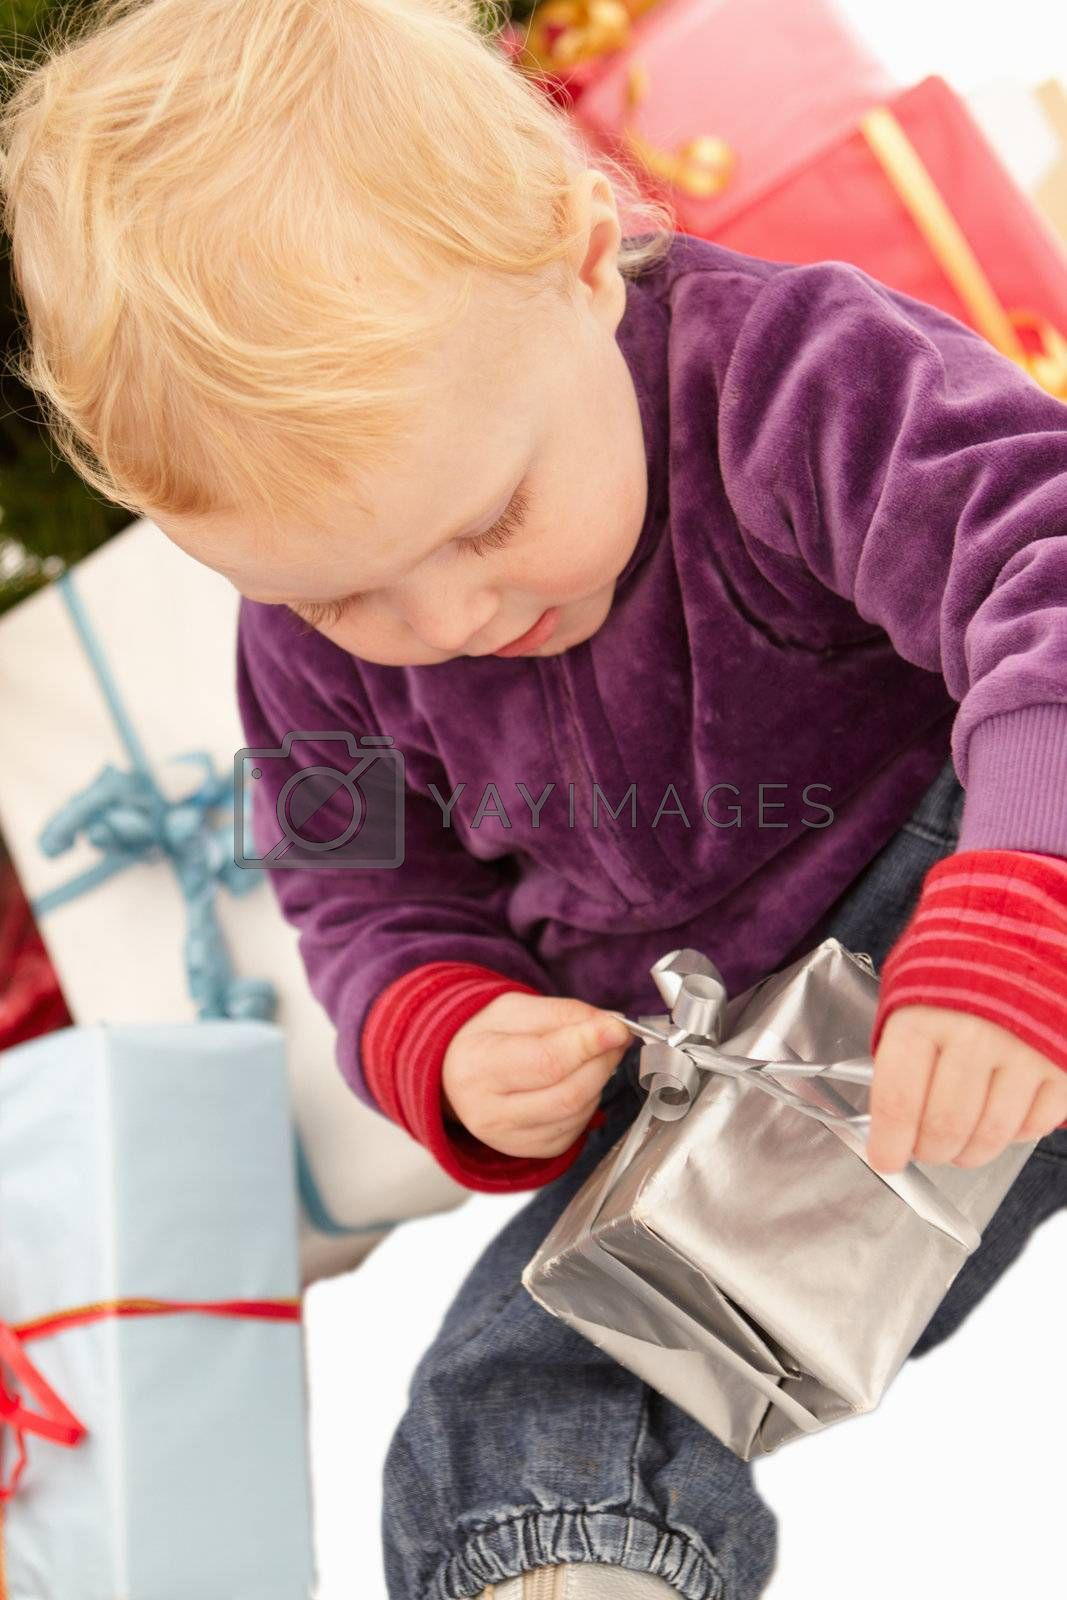 Royalty free image of Christmas Presents - Little girl opening gifts by FreedomImage